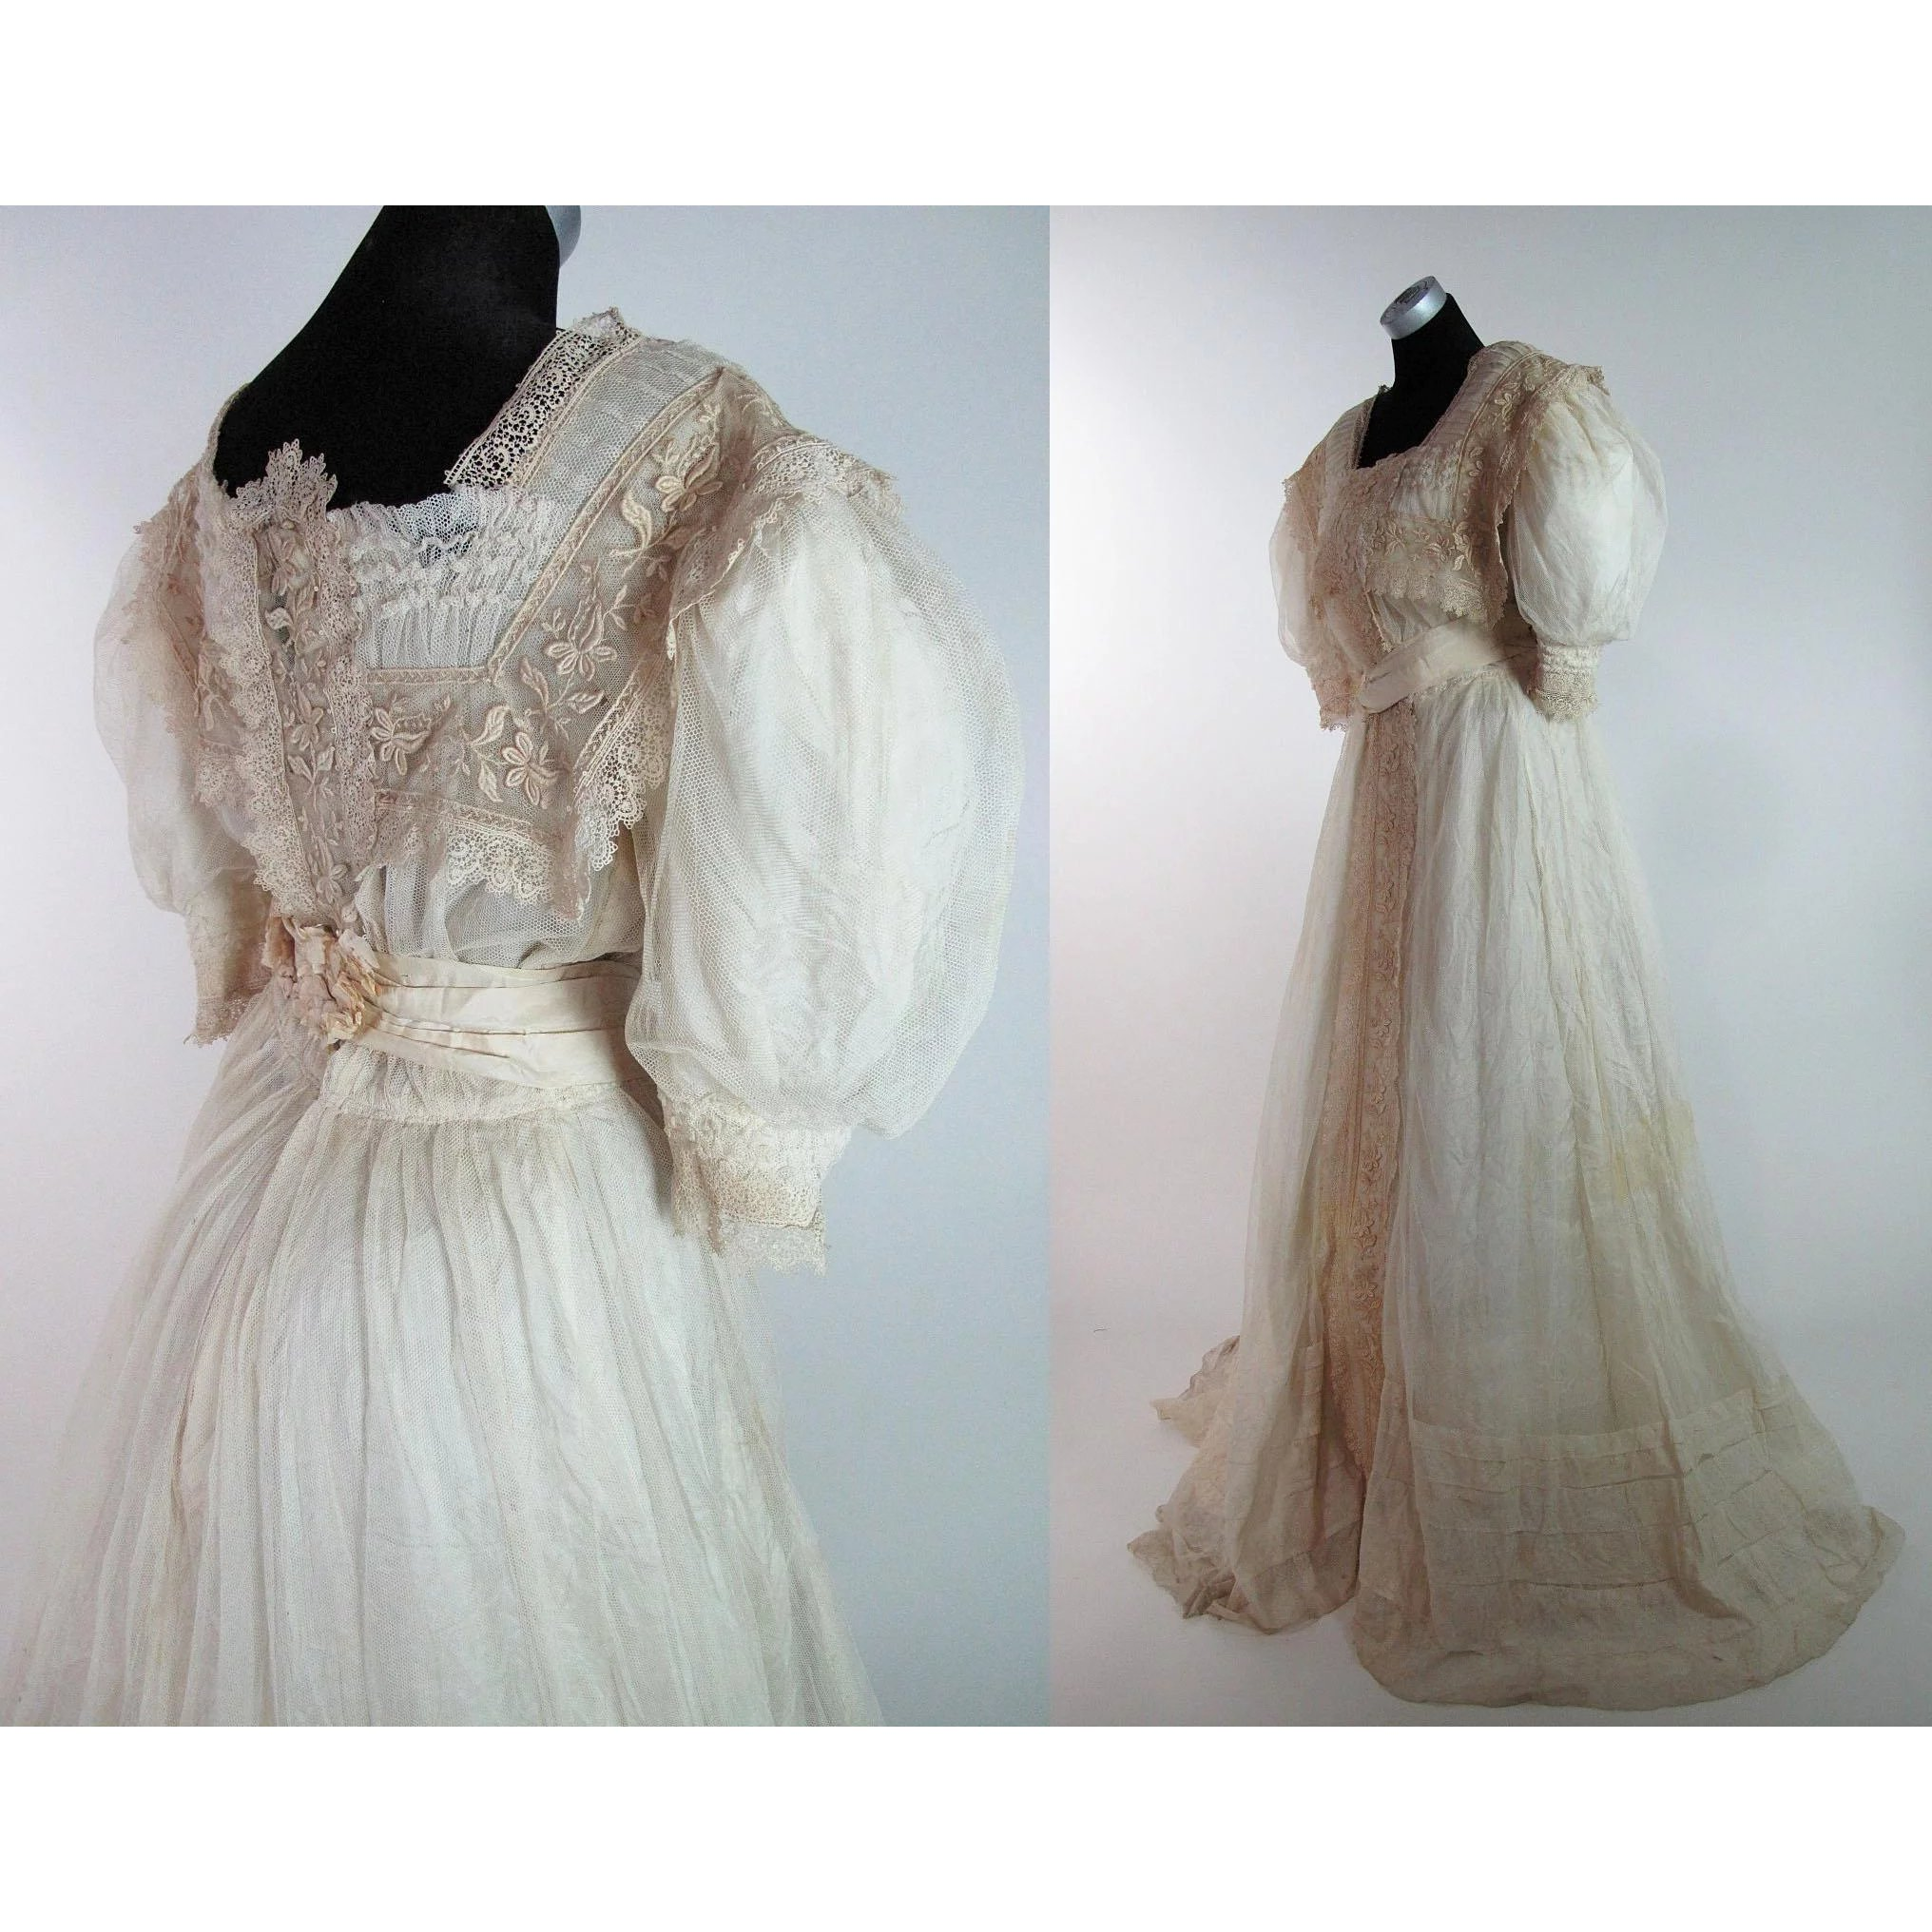 9b64807e2d1 Frothy Edwardian Belle Epoque Gown With Train   Marzilli Vintage ...